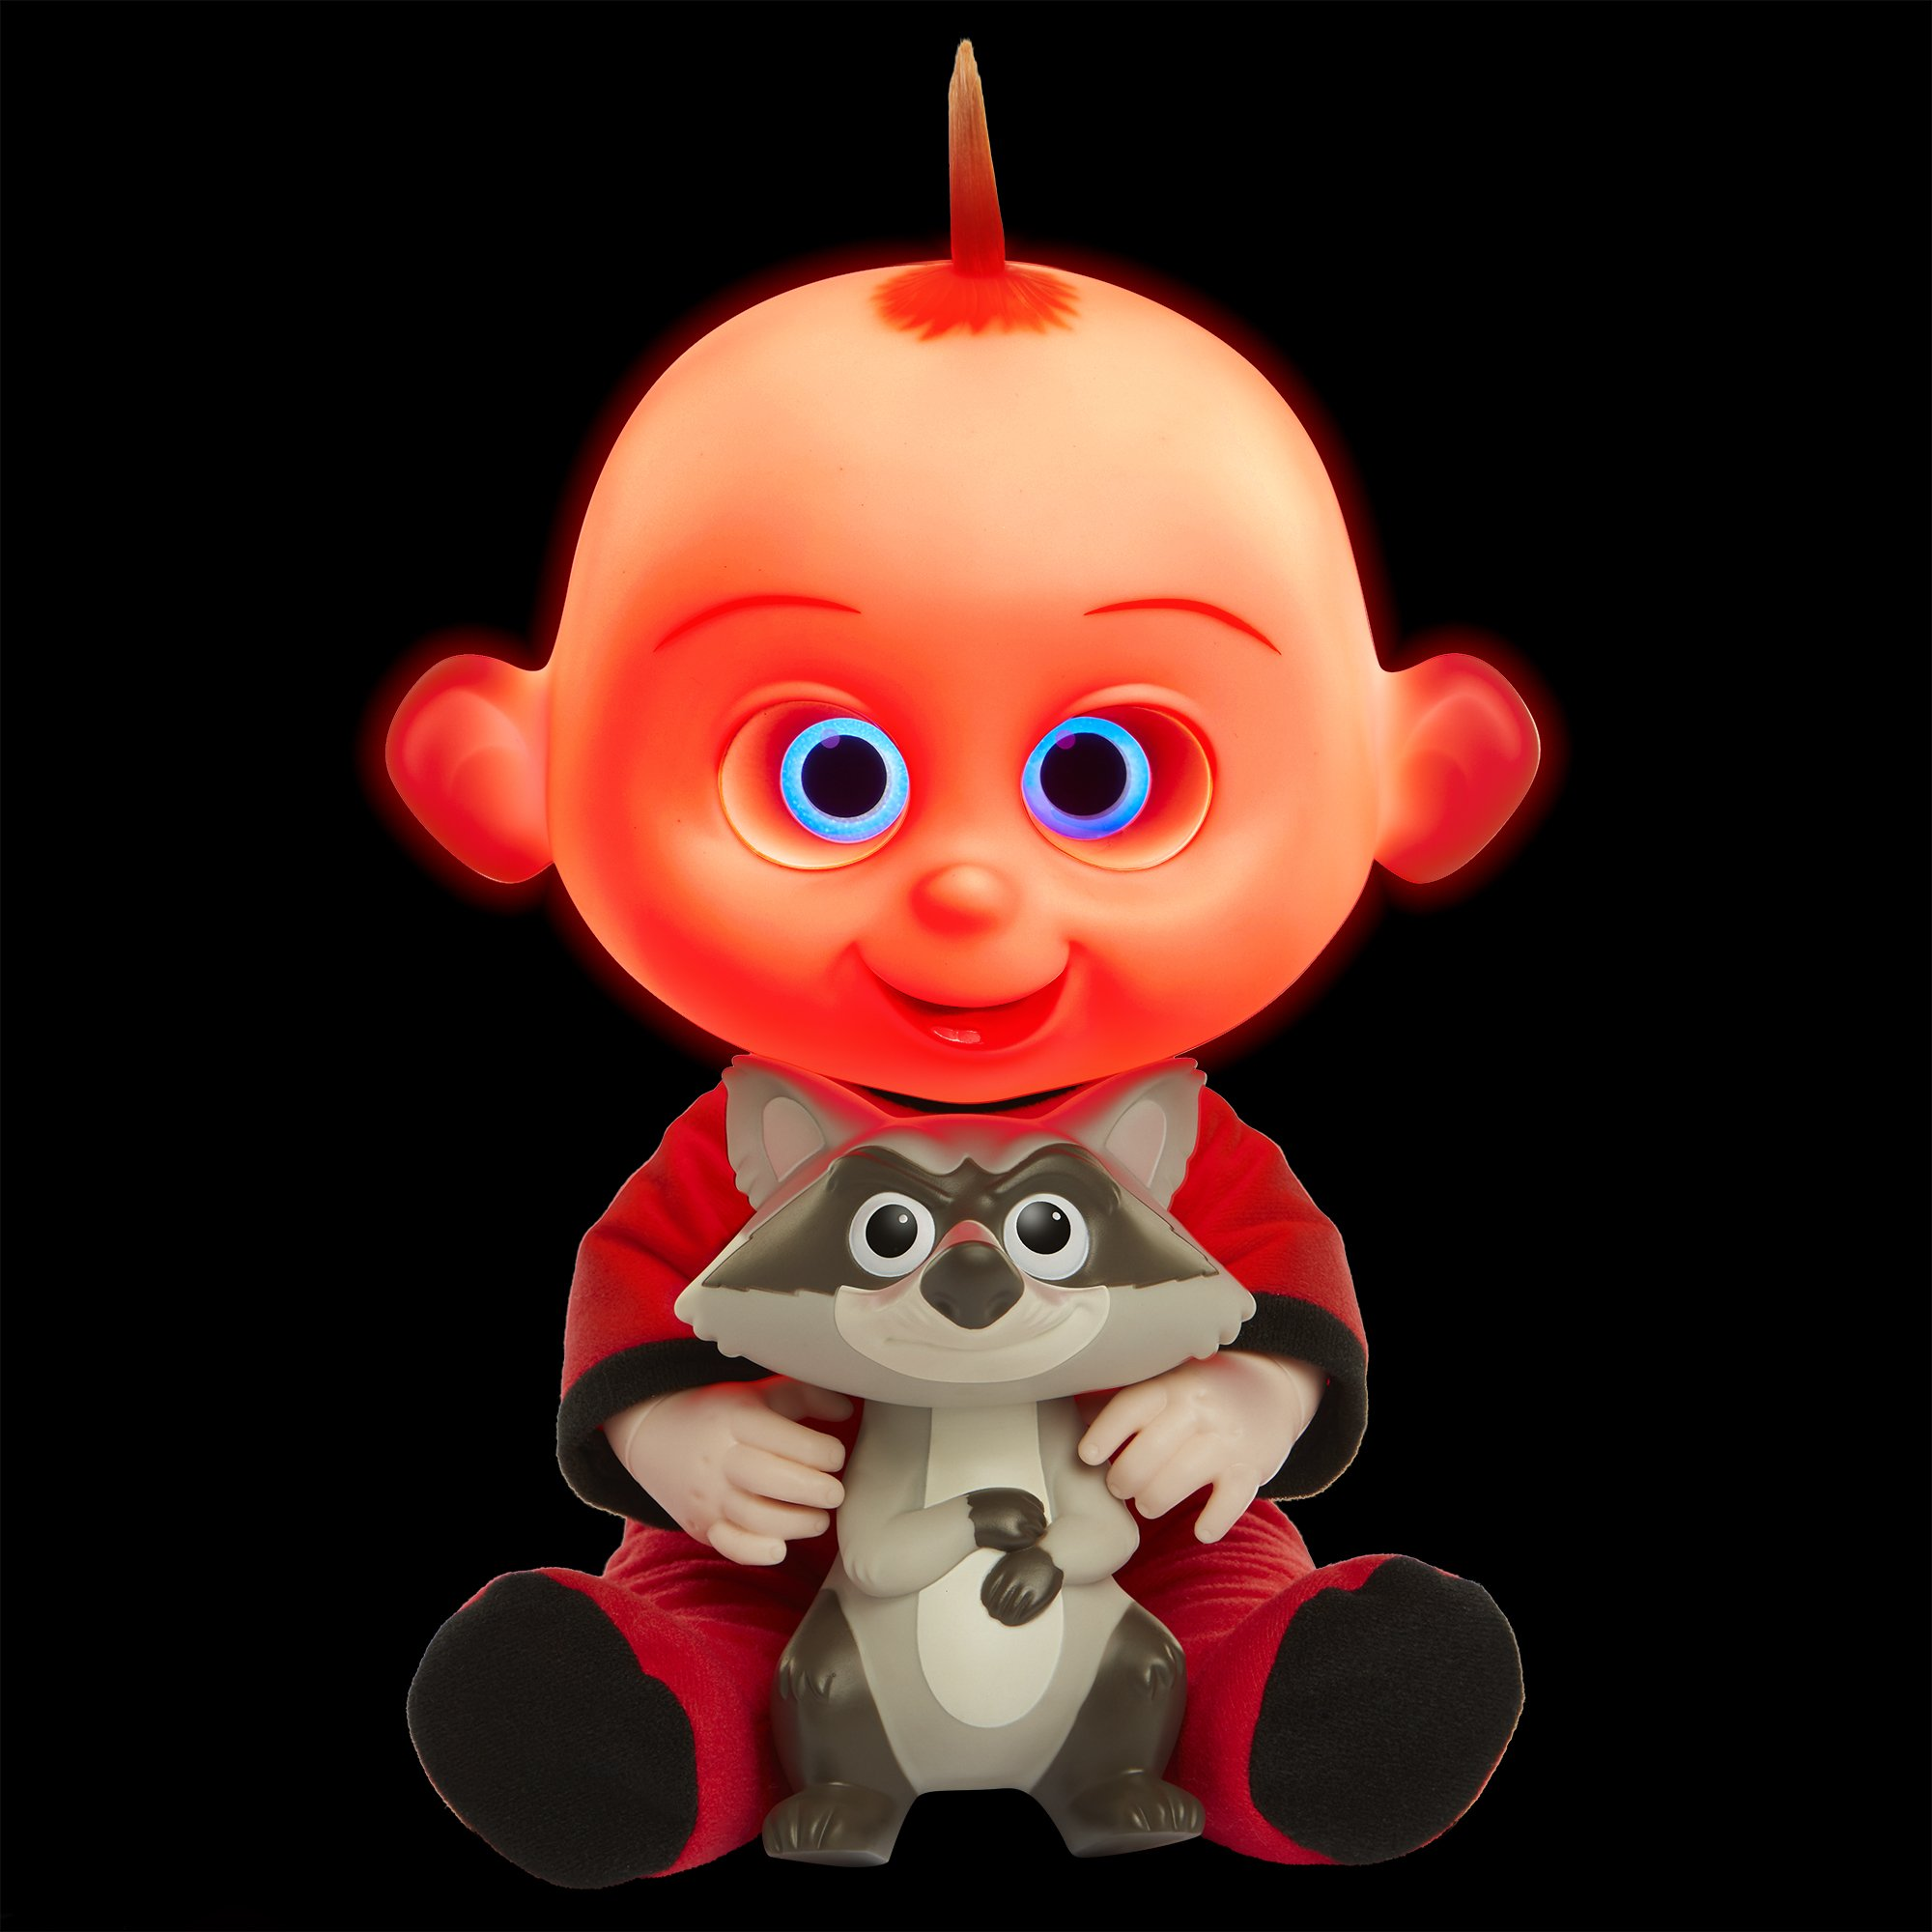 The Incredibles 2 Jack-Jack Plush-Figure Features Lights & Sounds and comes with Raccoon Toy by The Incredibles 2 (Image #5)